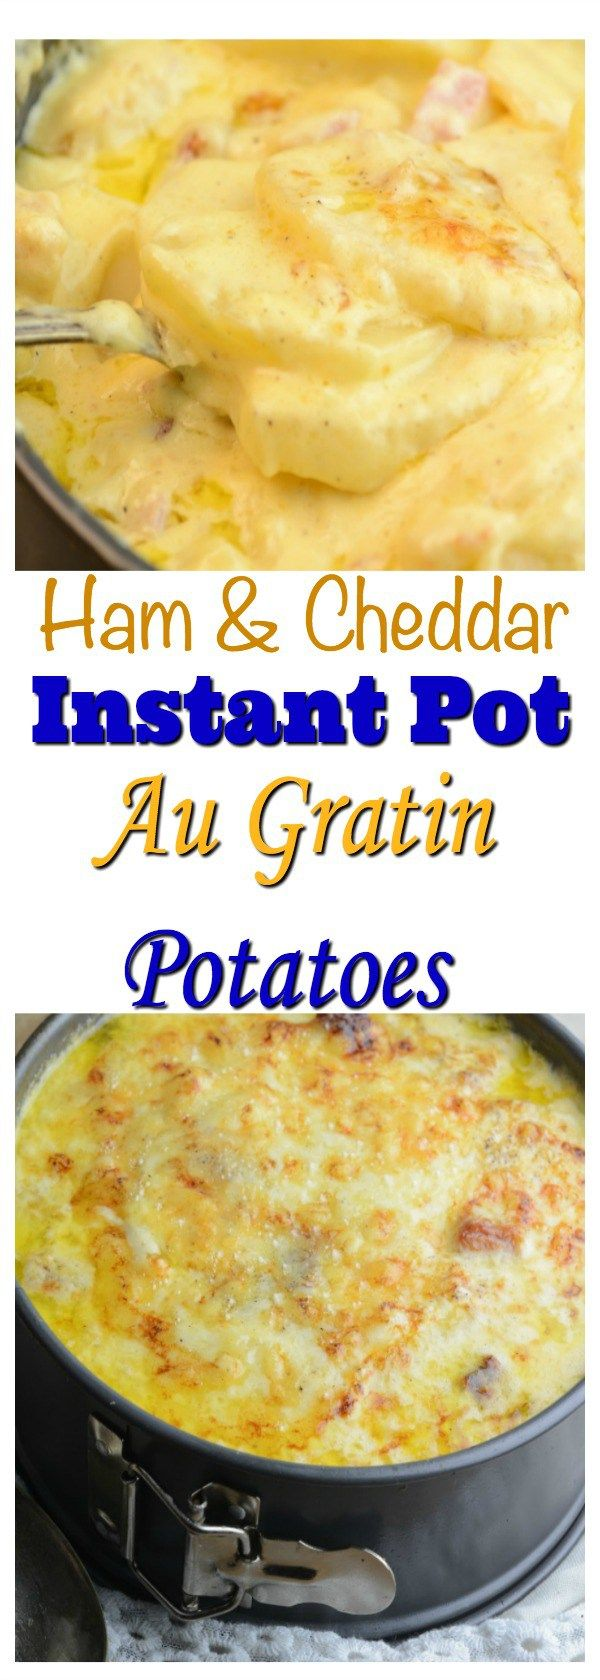 Ham & Chedder Instant Pot Augratin Potatoes - try vegetarian